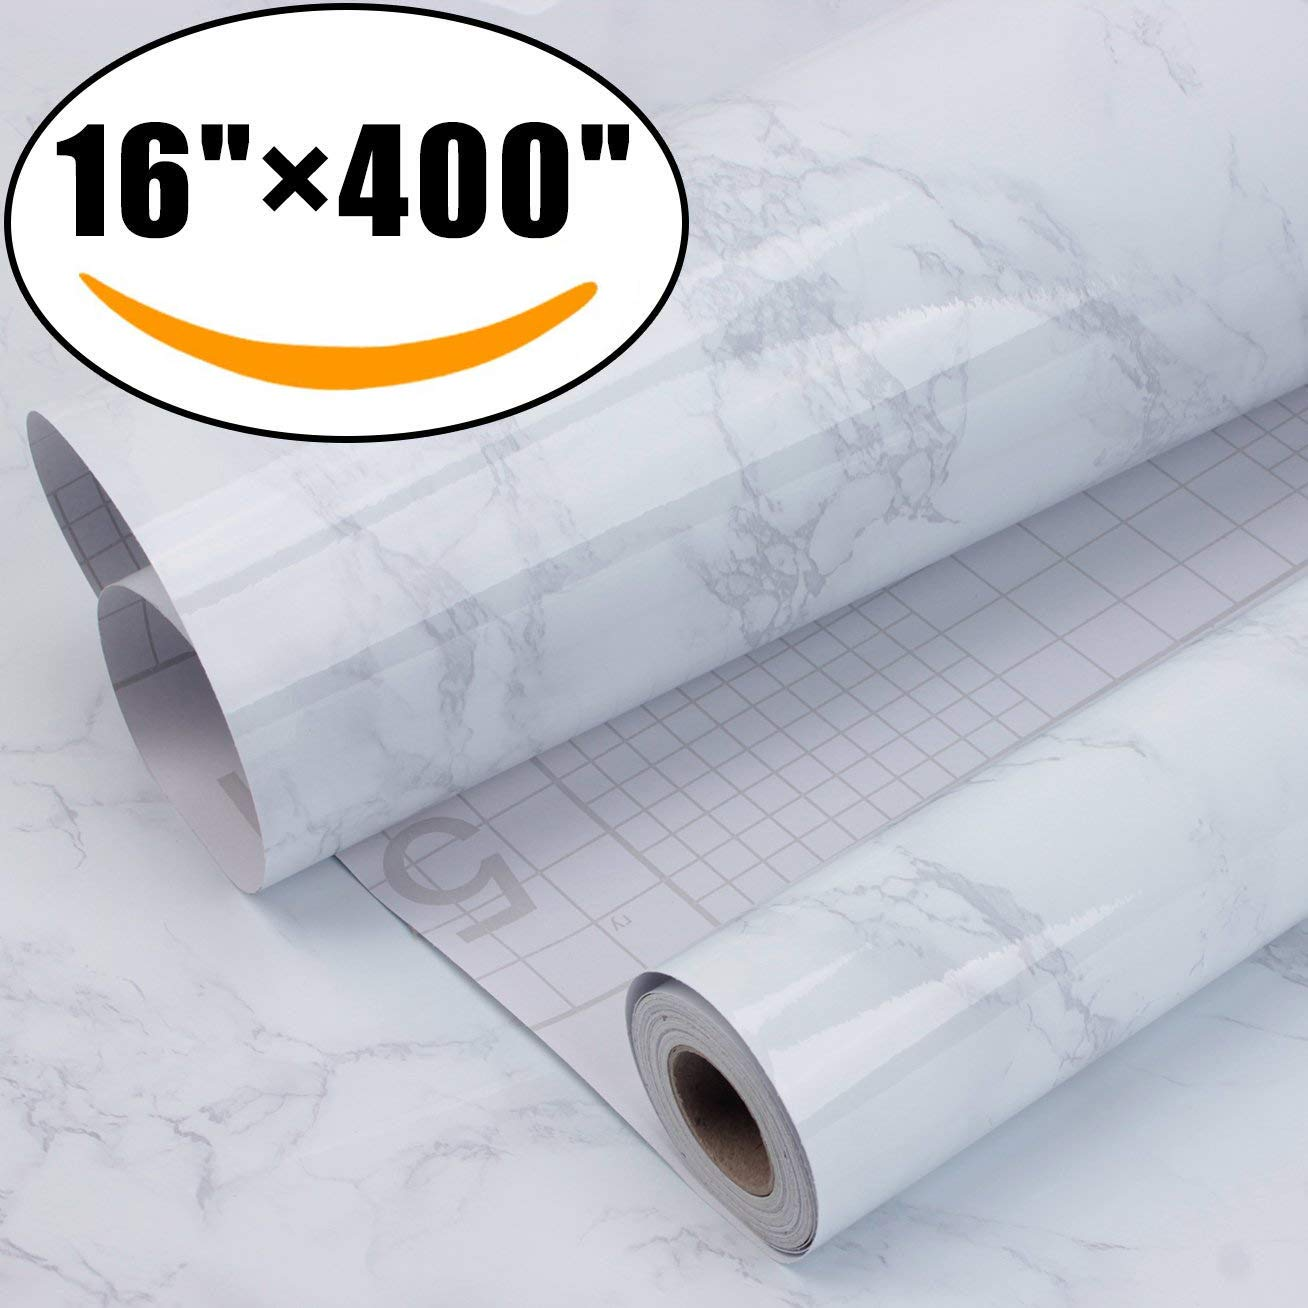 Marble Self Adhesive Paper 16 inch x 400 inch - Granite Gray/White Roll Kitchen countertop Cabinet Furniture is renovated Thick Waterproof PVC by AROIC